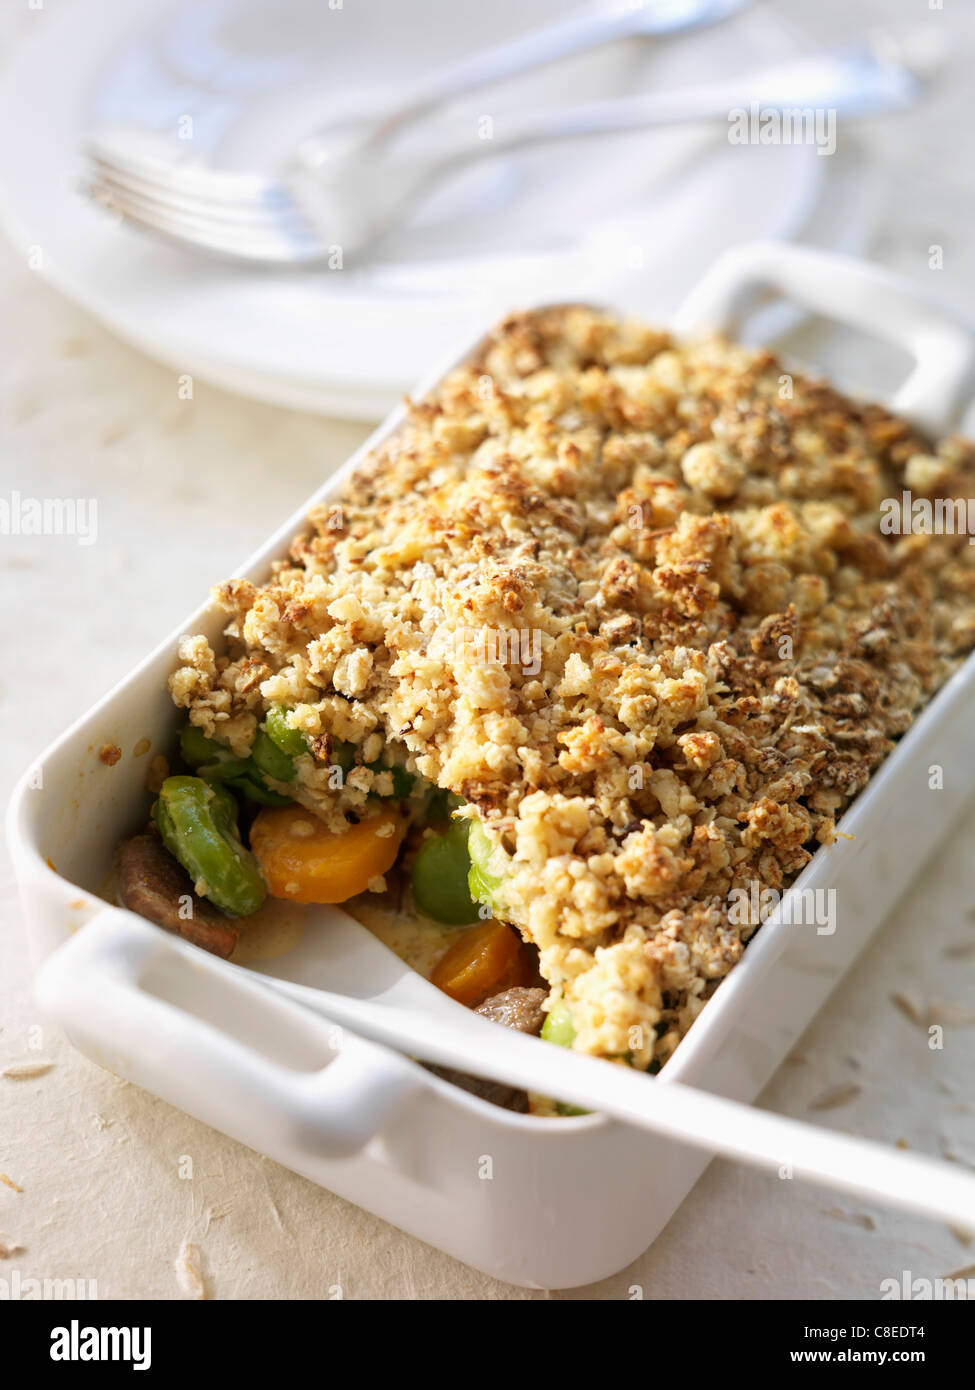 Lamb and vegetable savory oat crumble - Stock Image